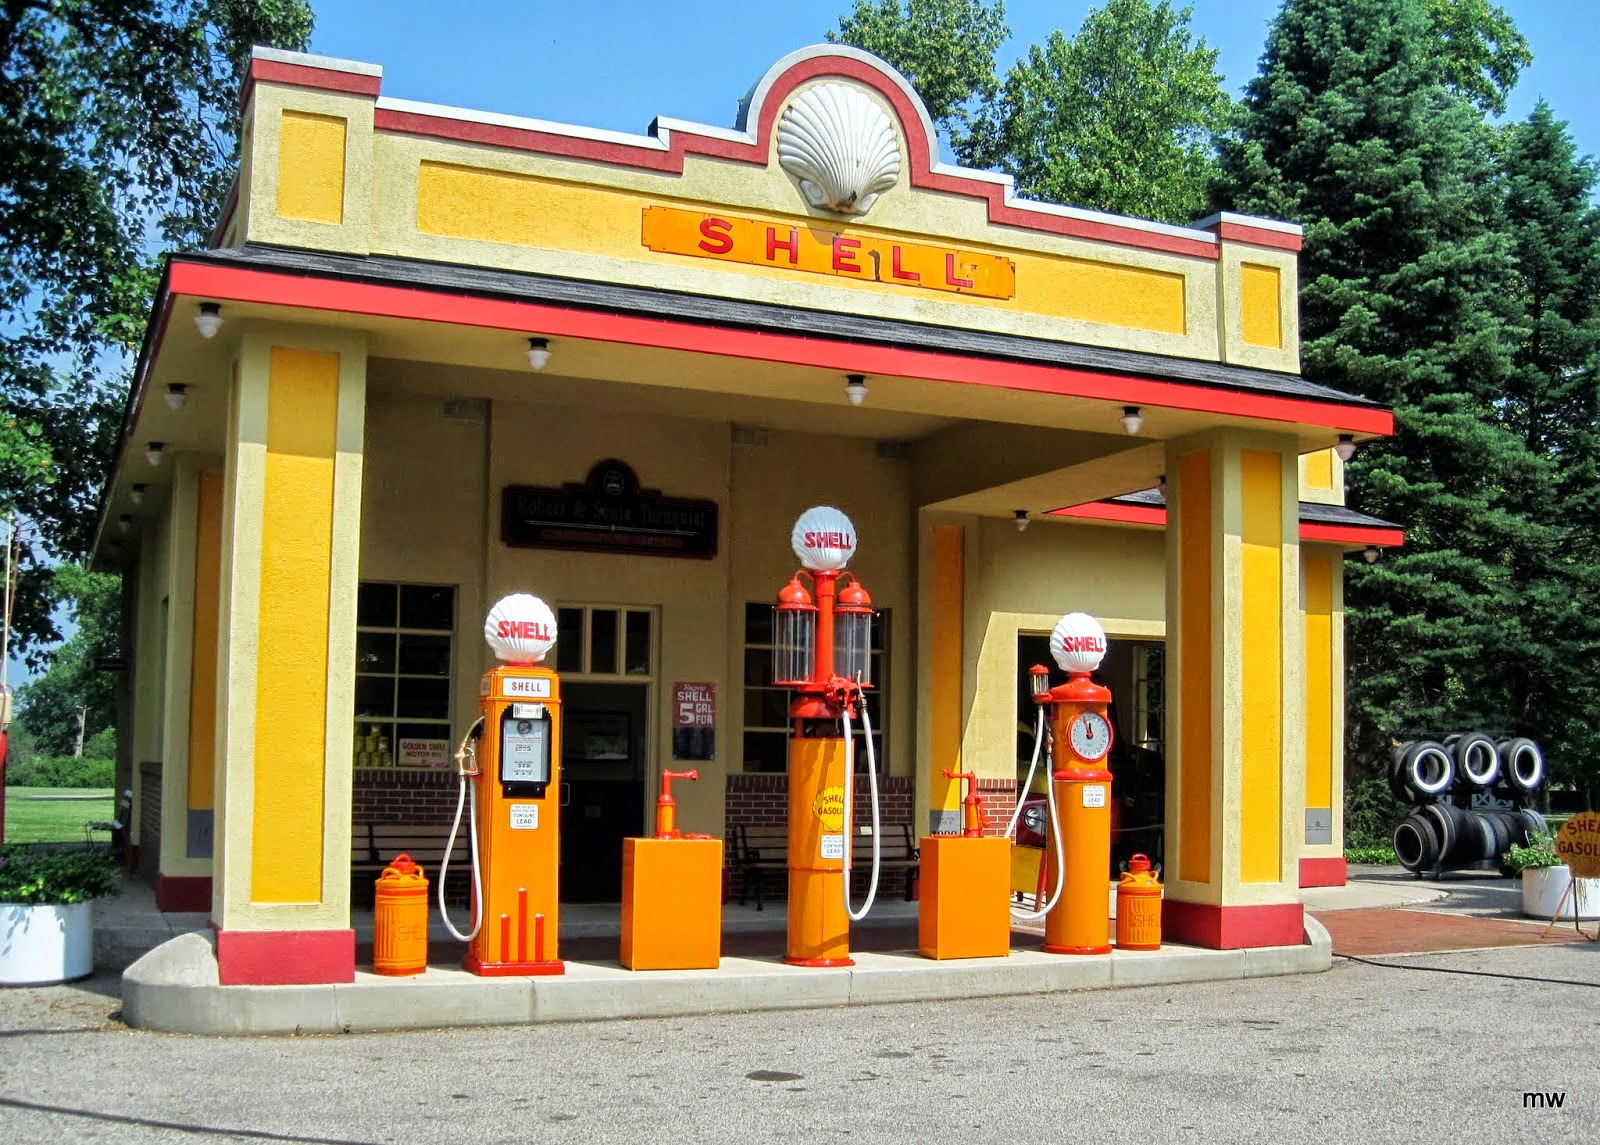 Old Time Gas Station With an Old-time Gas Pump